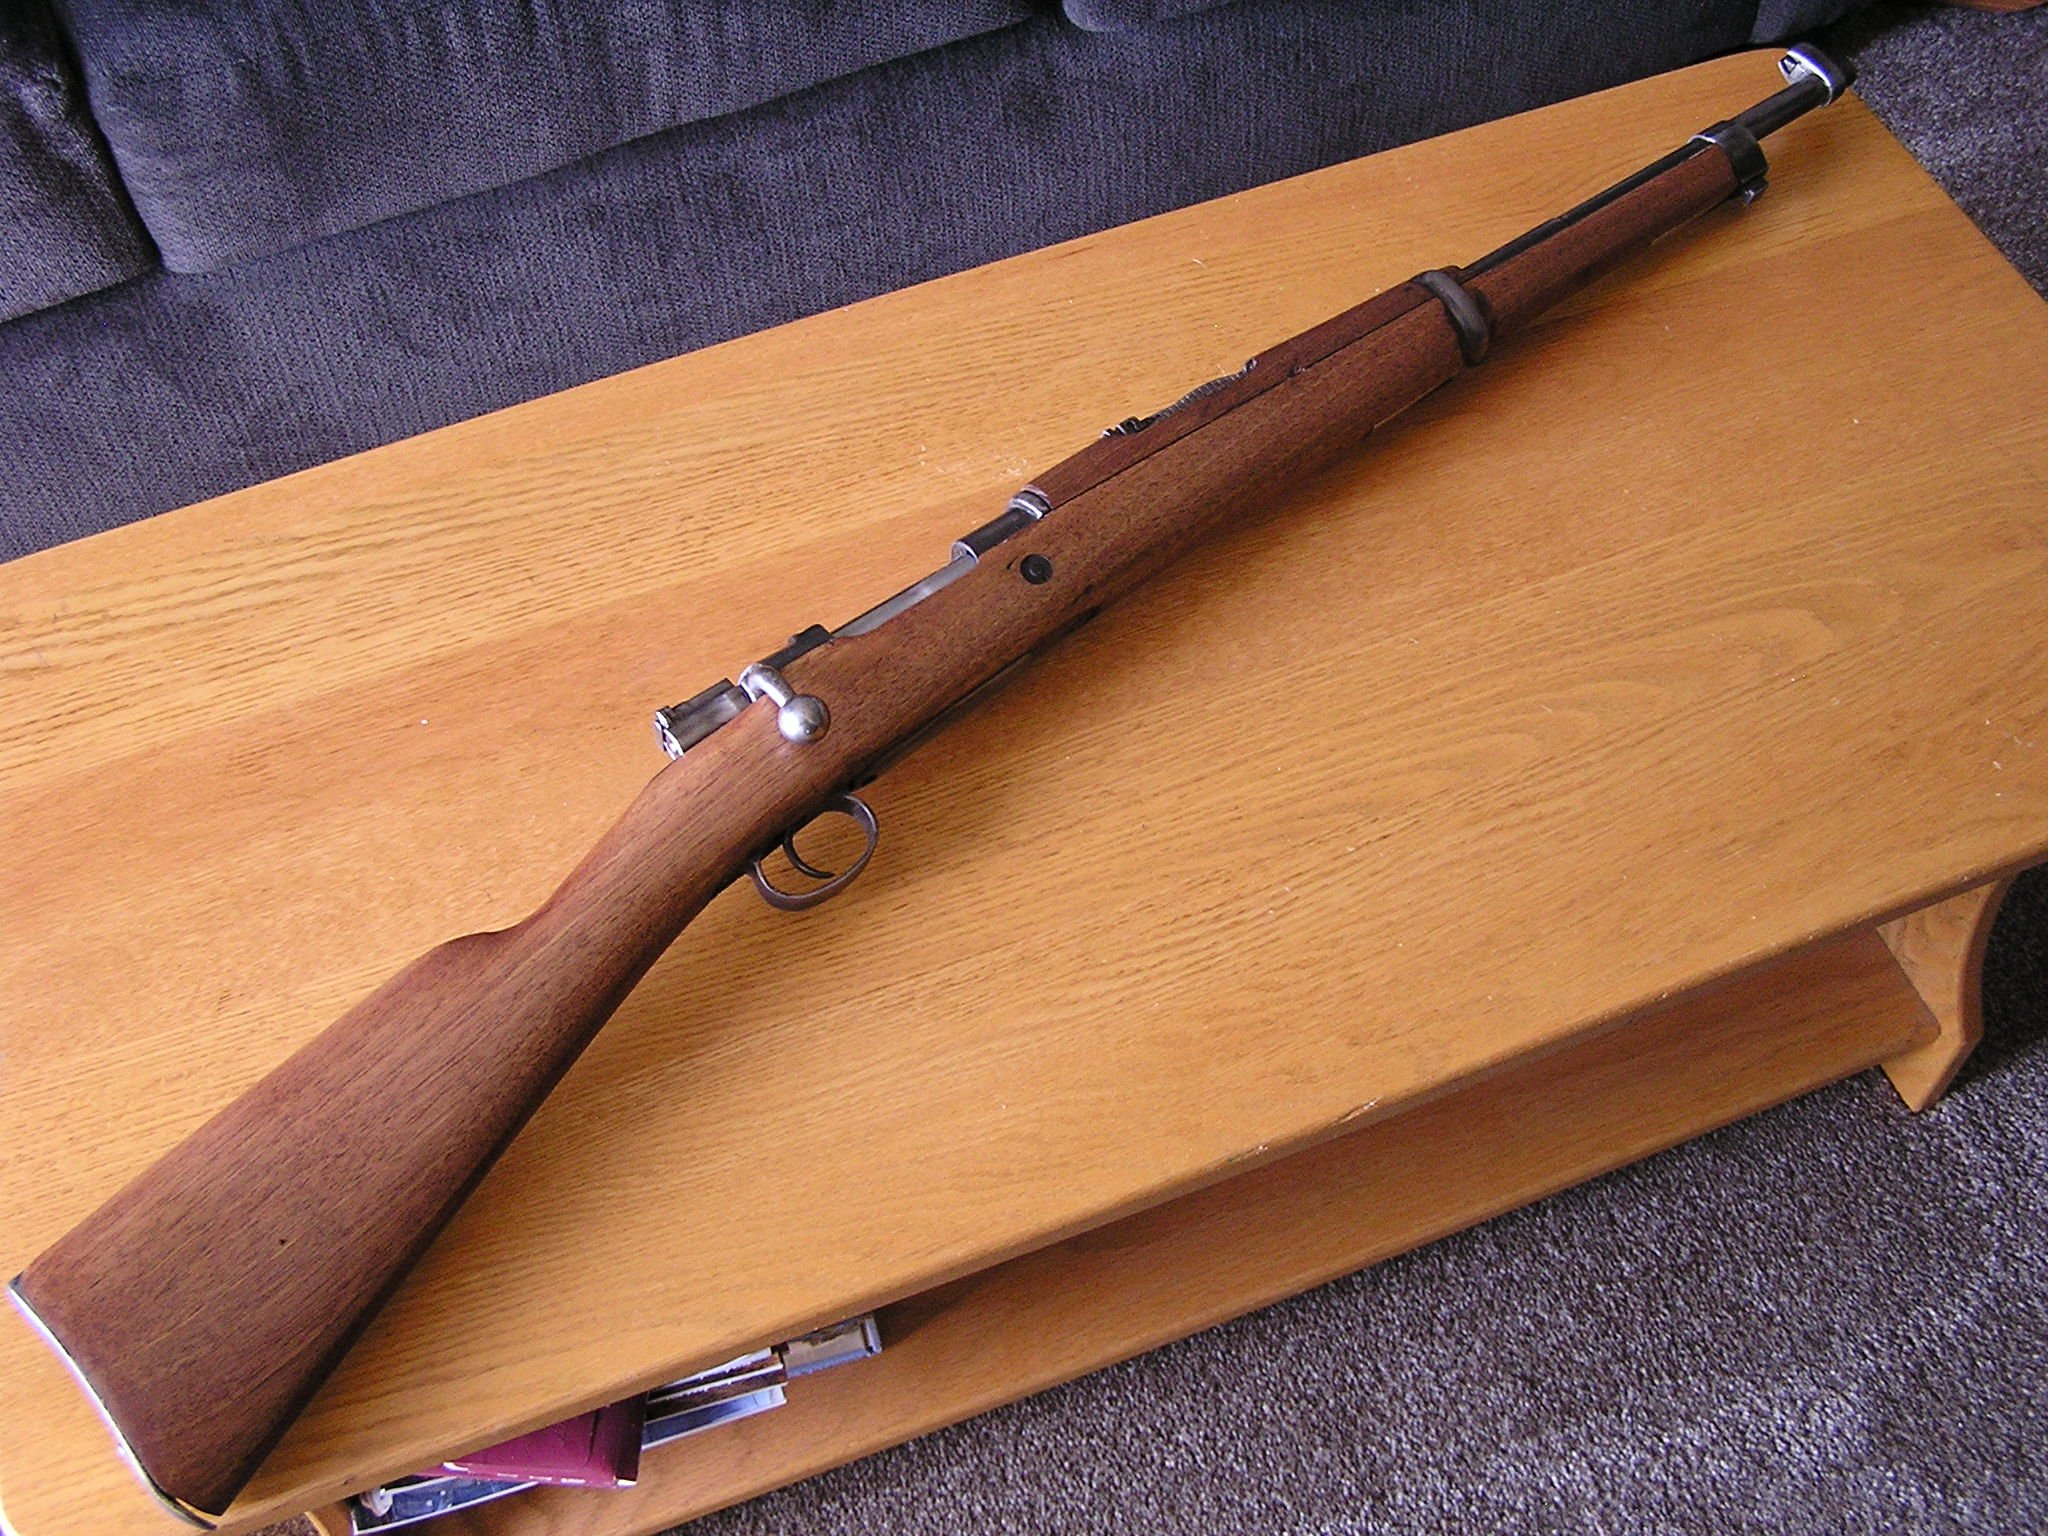 WTS Spanish Model 1916 Mauser, 7x57 Mauser (SOLD - PF